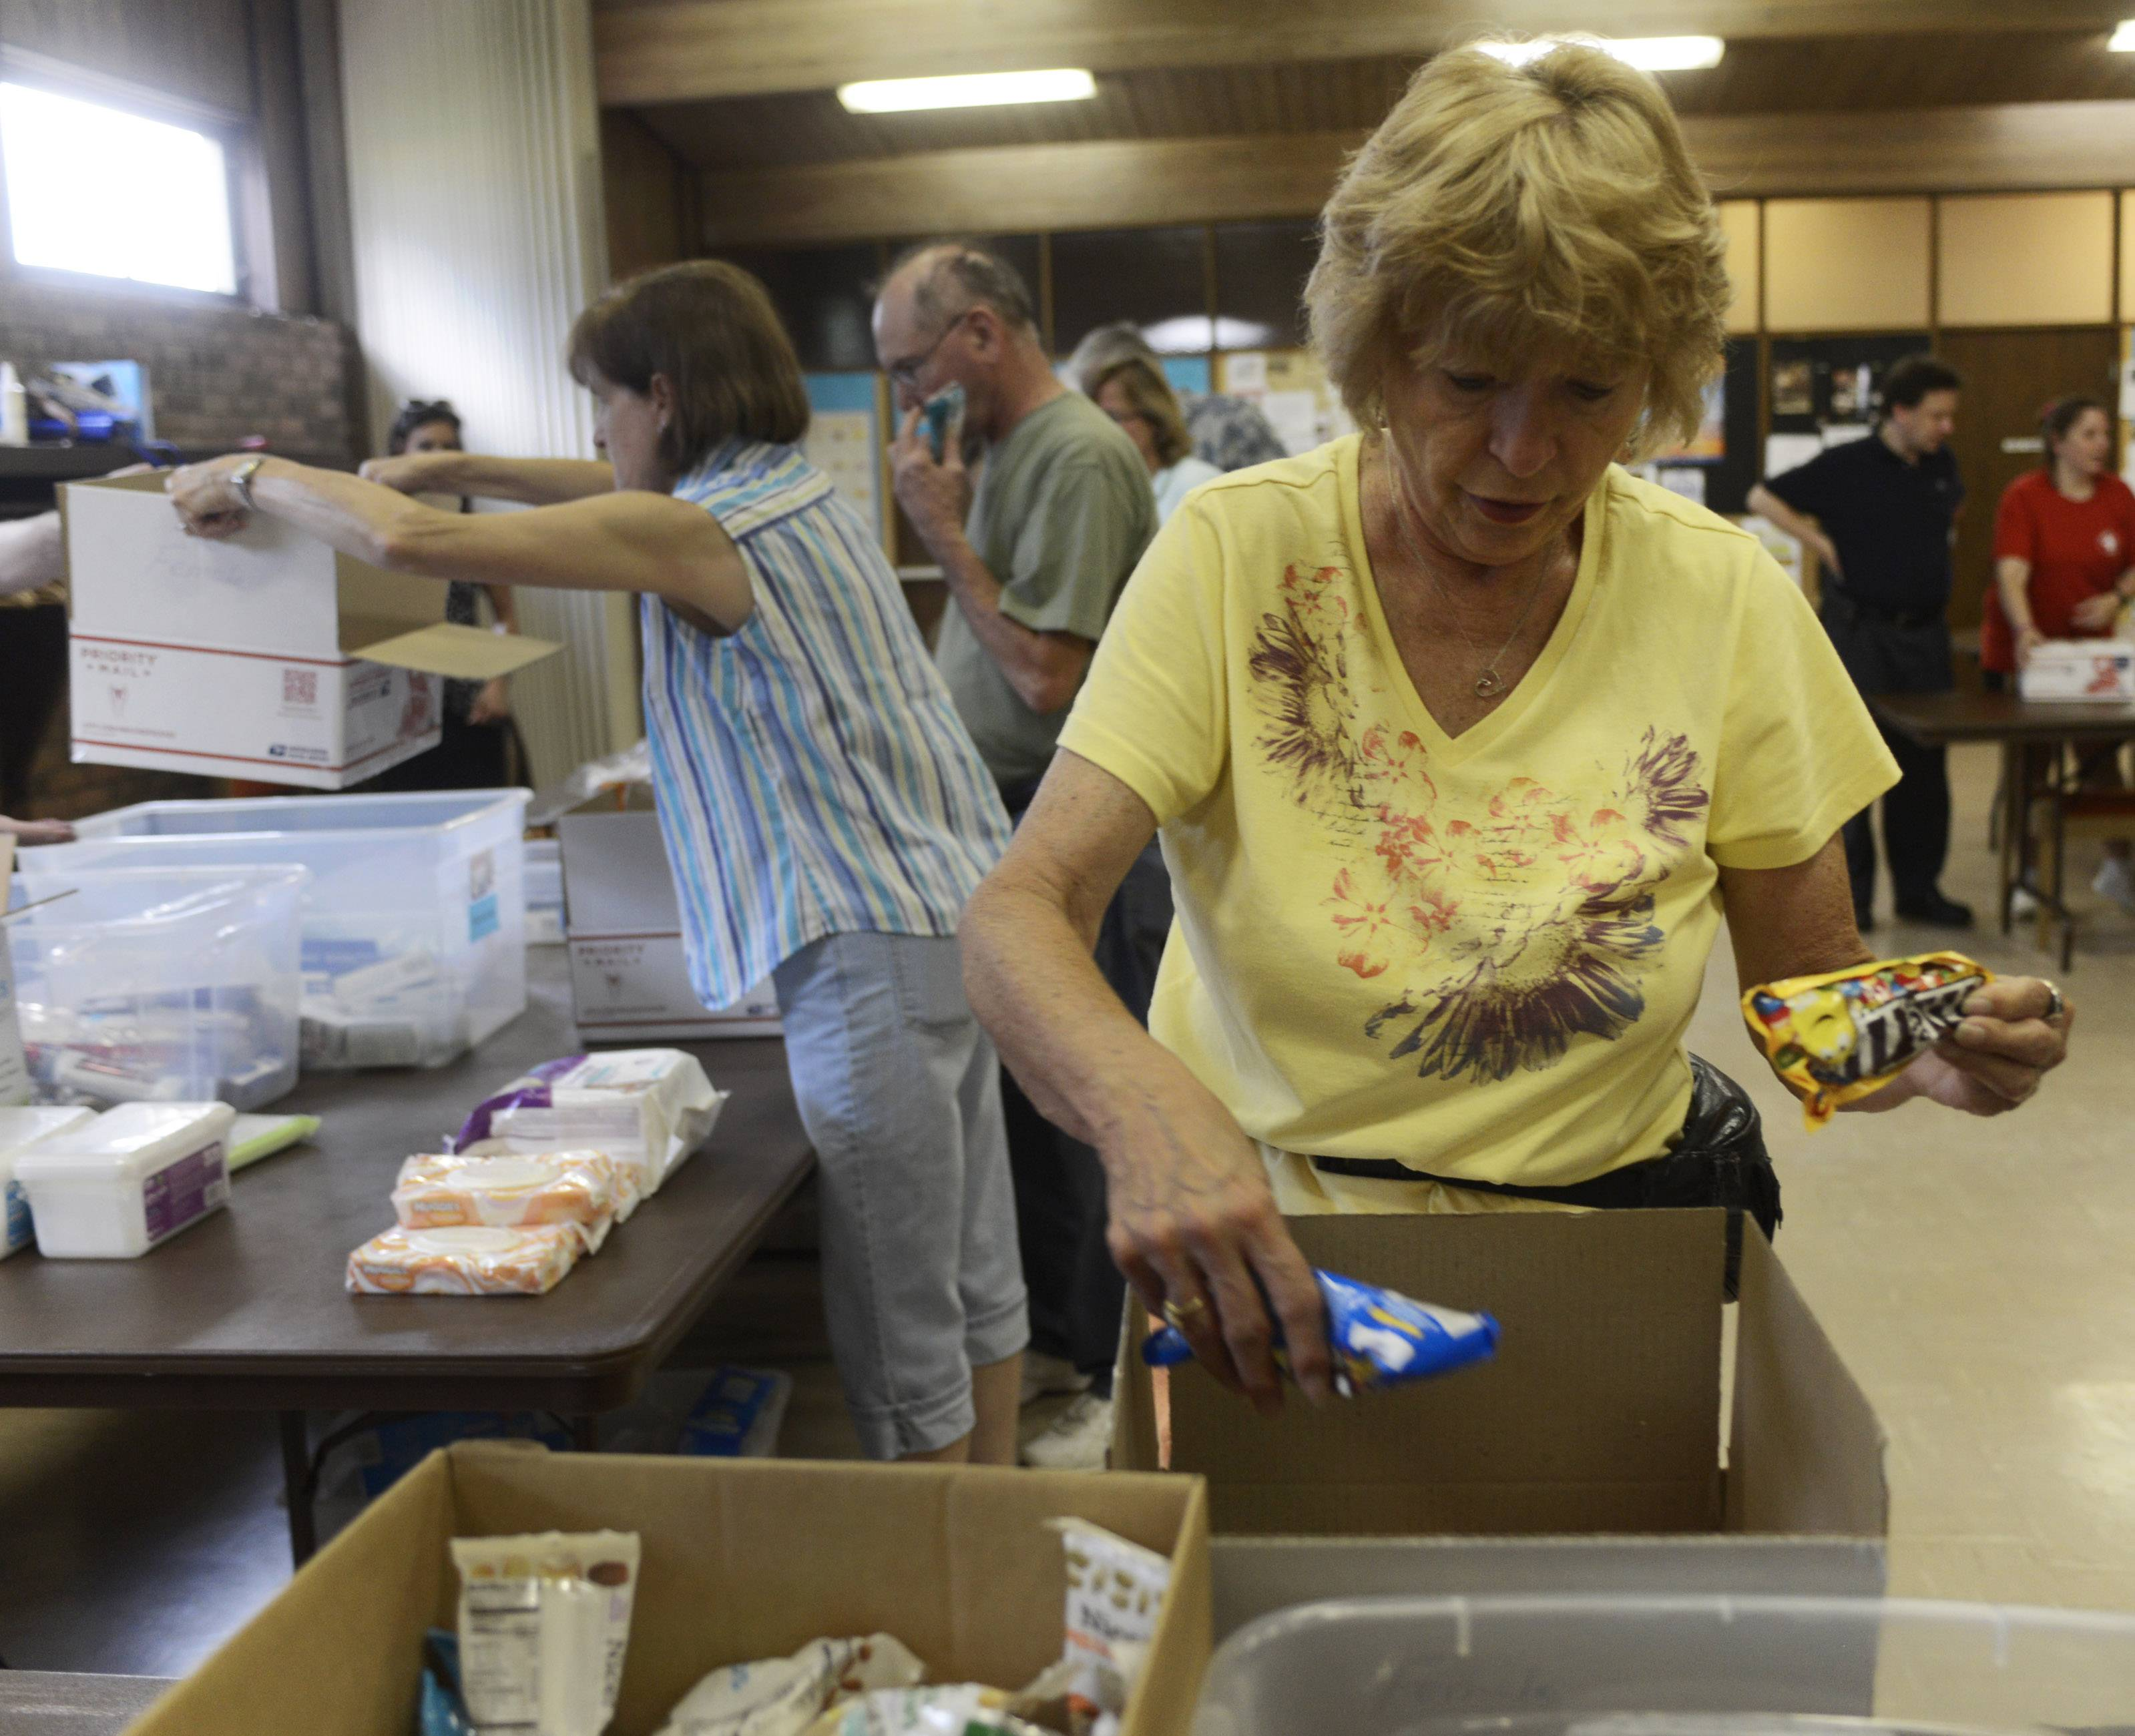 Karen Schichi of Elk Grove Village helps pack boxes loaded with personal items, food and candy for U.S. soldiers serving overseas during a Packages 4 Patriots event Tuesday night at the Lutheran Church of the Holy Spirit in Elk Grove Village.